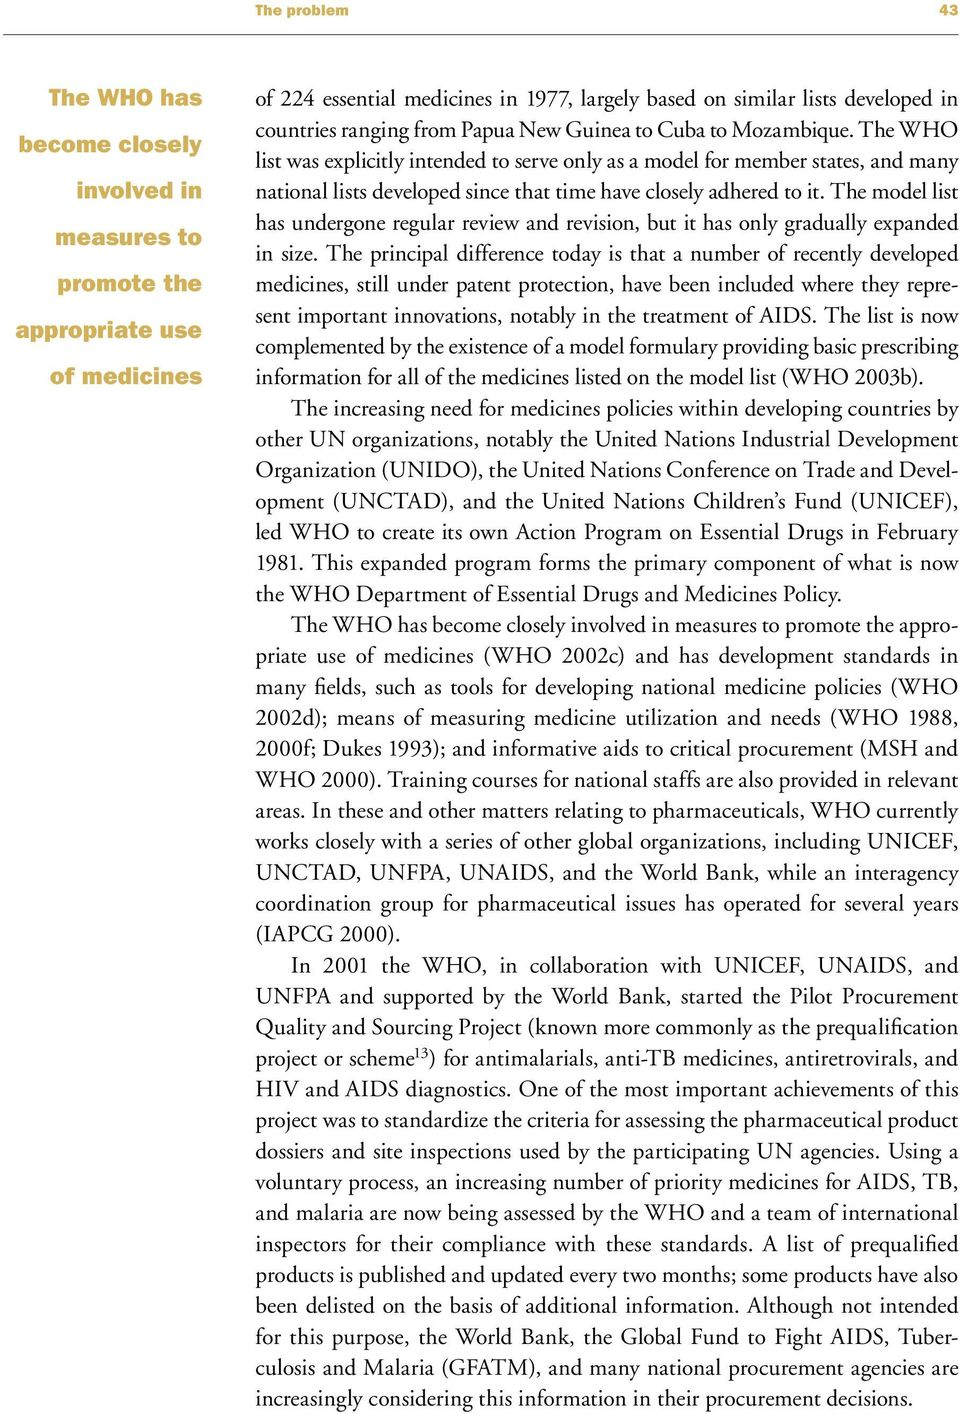 The WHO list was explicitly intended to serve only as a model for member states, and many national lists developed since that time have closely adhered to it.